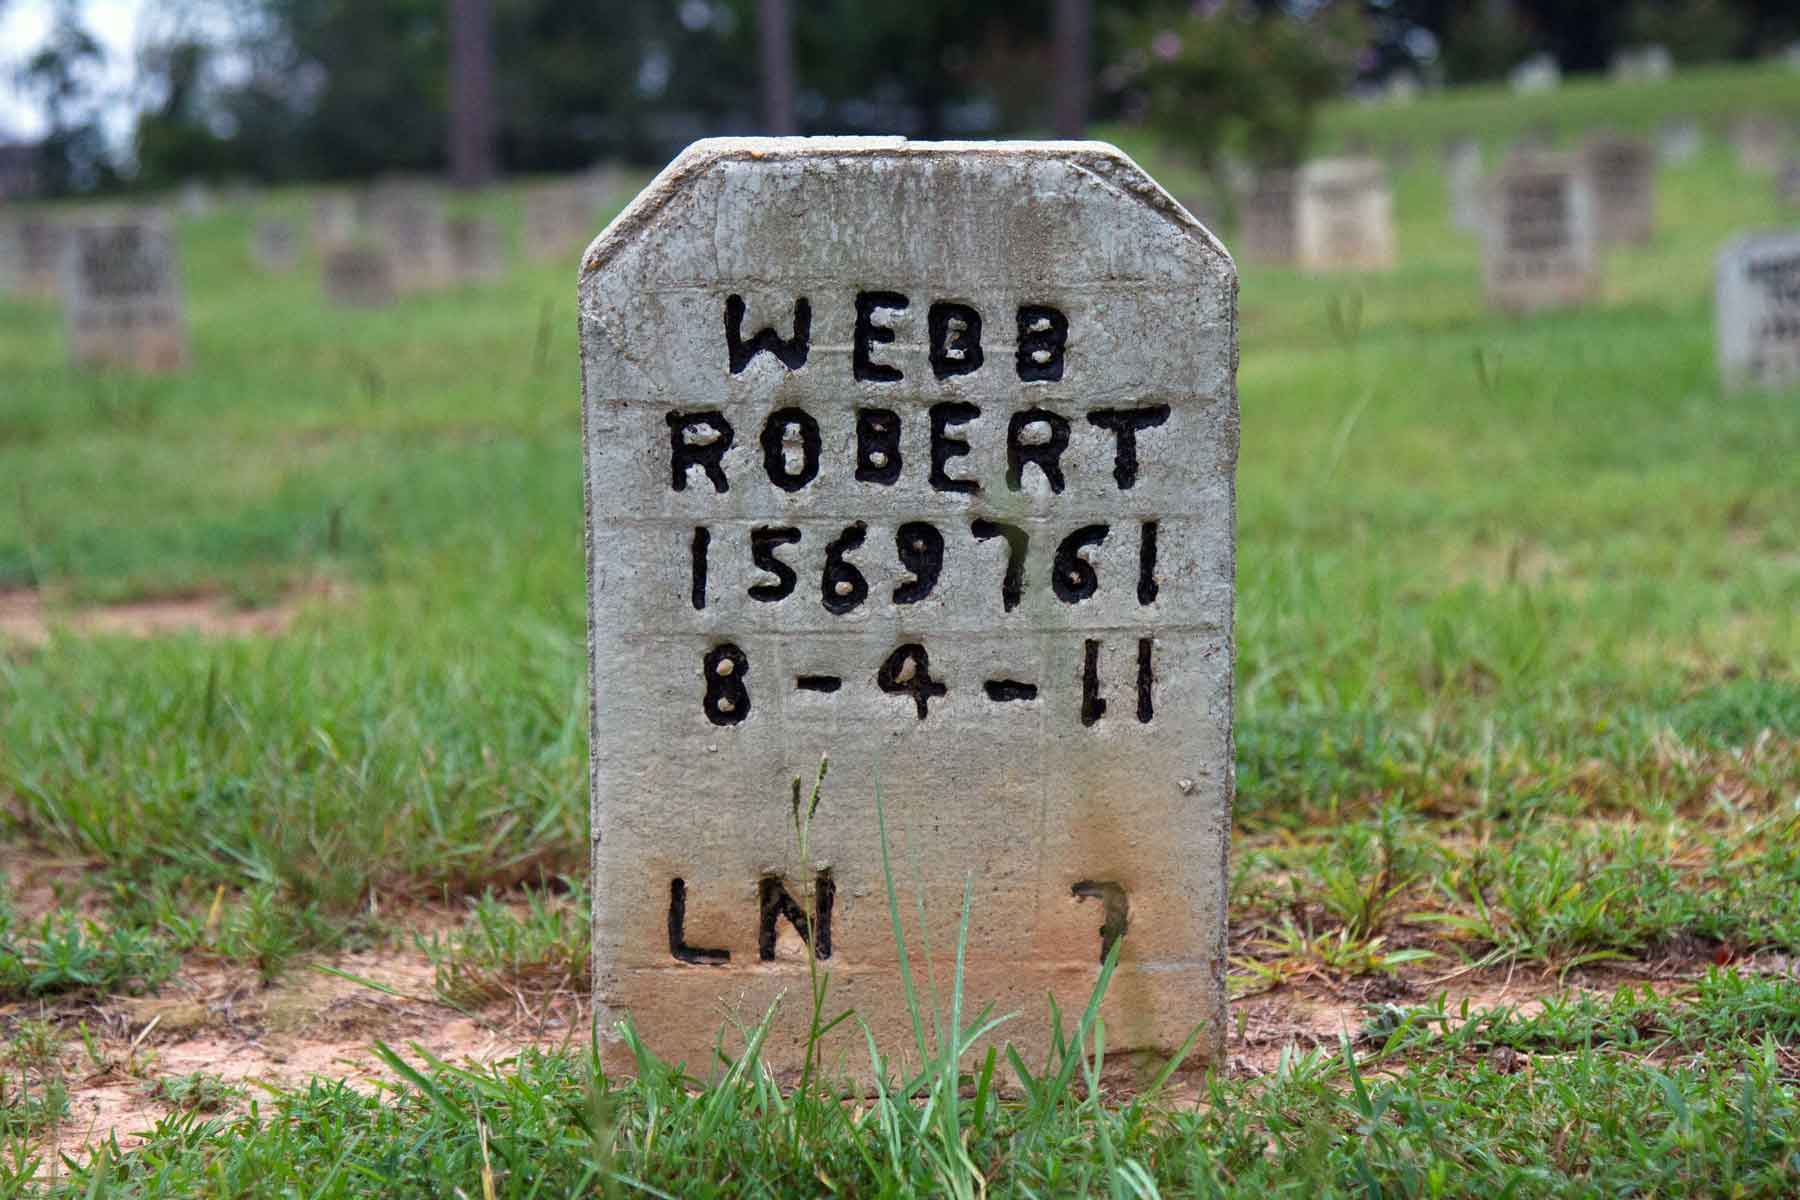 Mr. Webb is buried at the Captain Joe Byrd Cemetery in Huntsville, Texas. He died on a day the heat index was over 104 degrees outside. (Adam Giese)